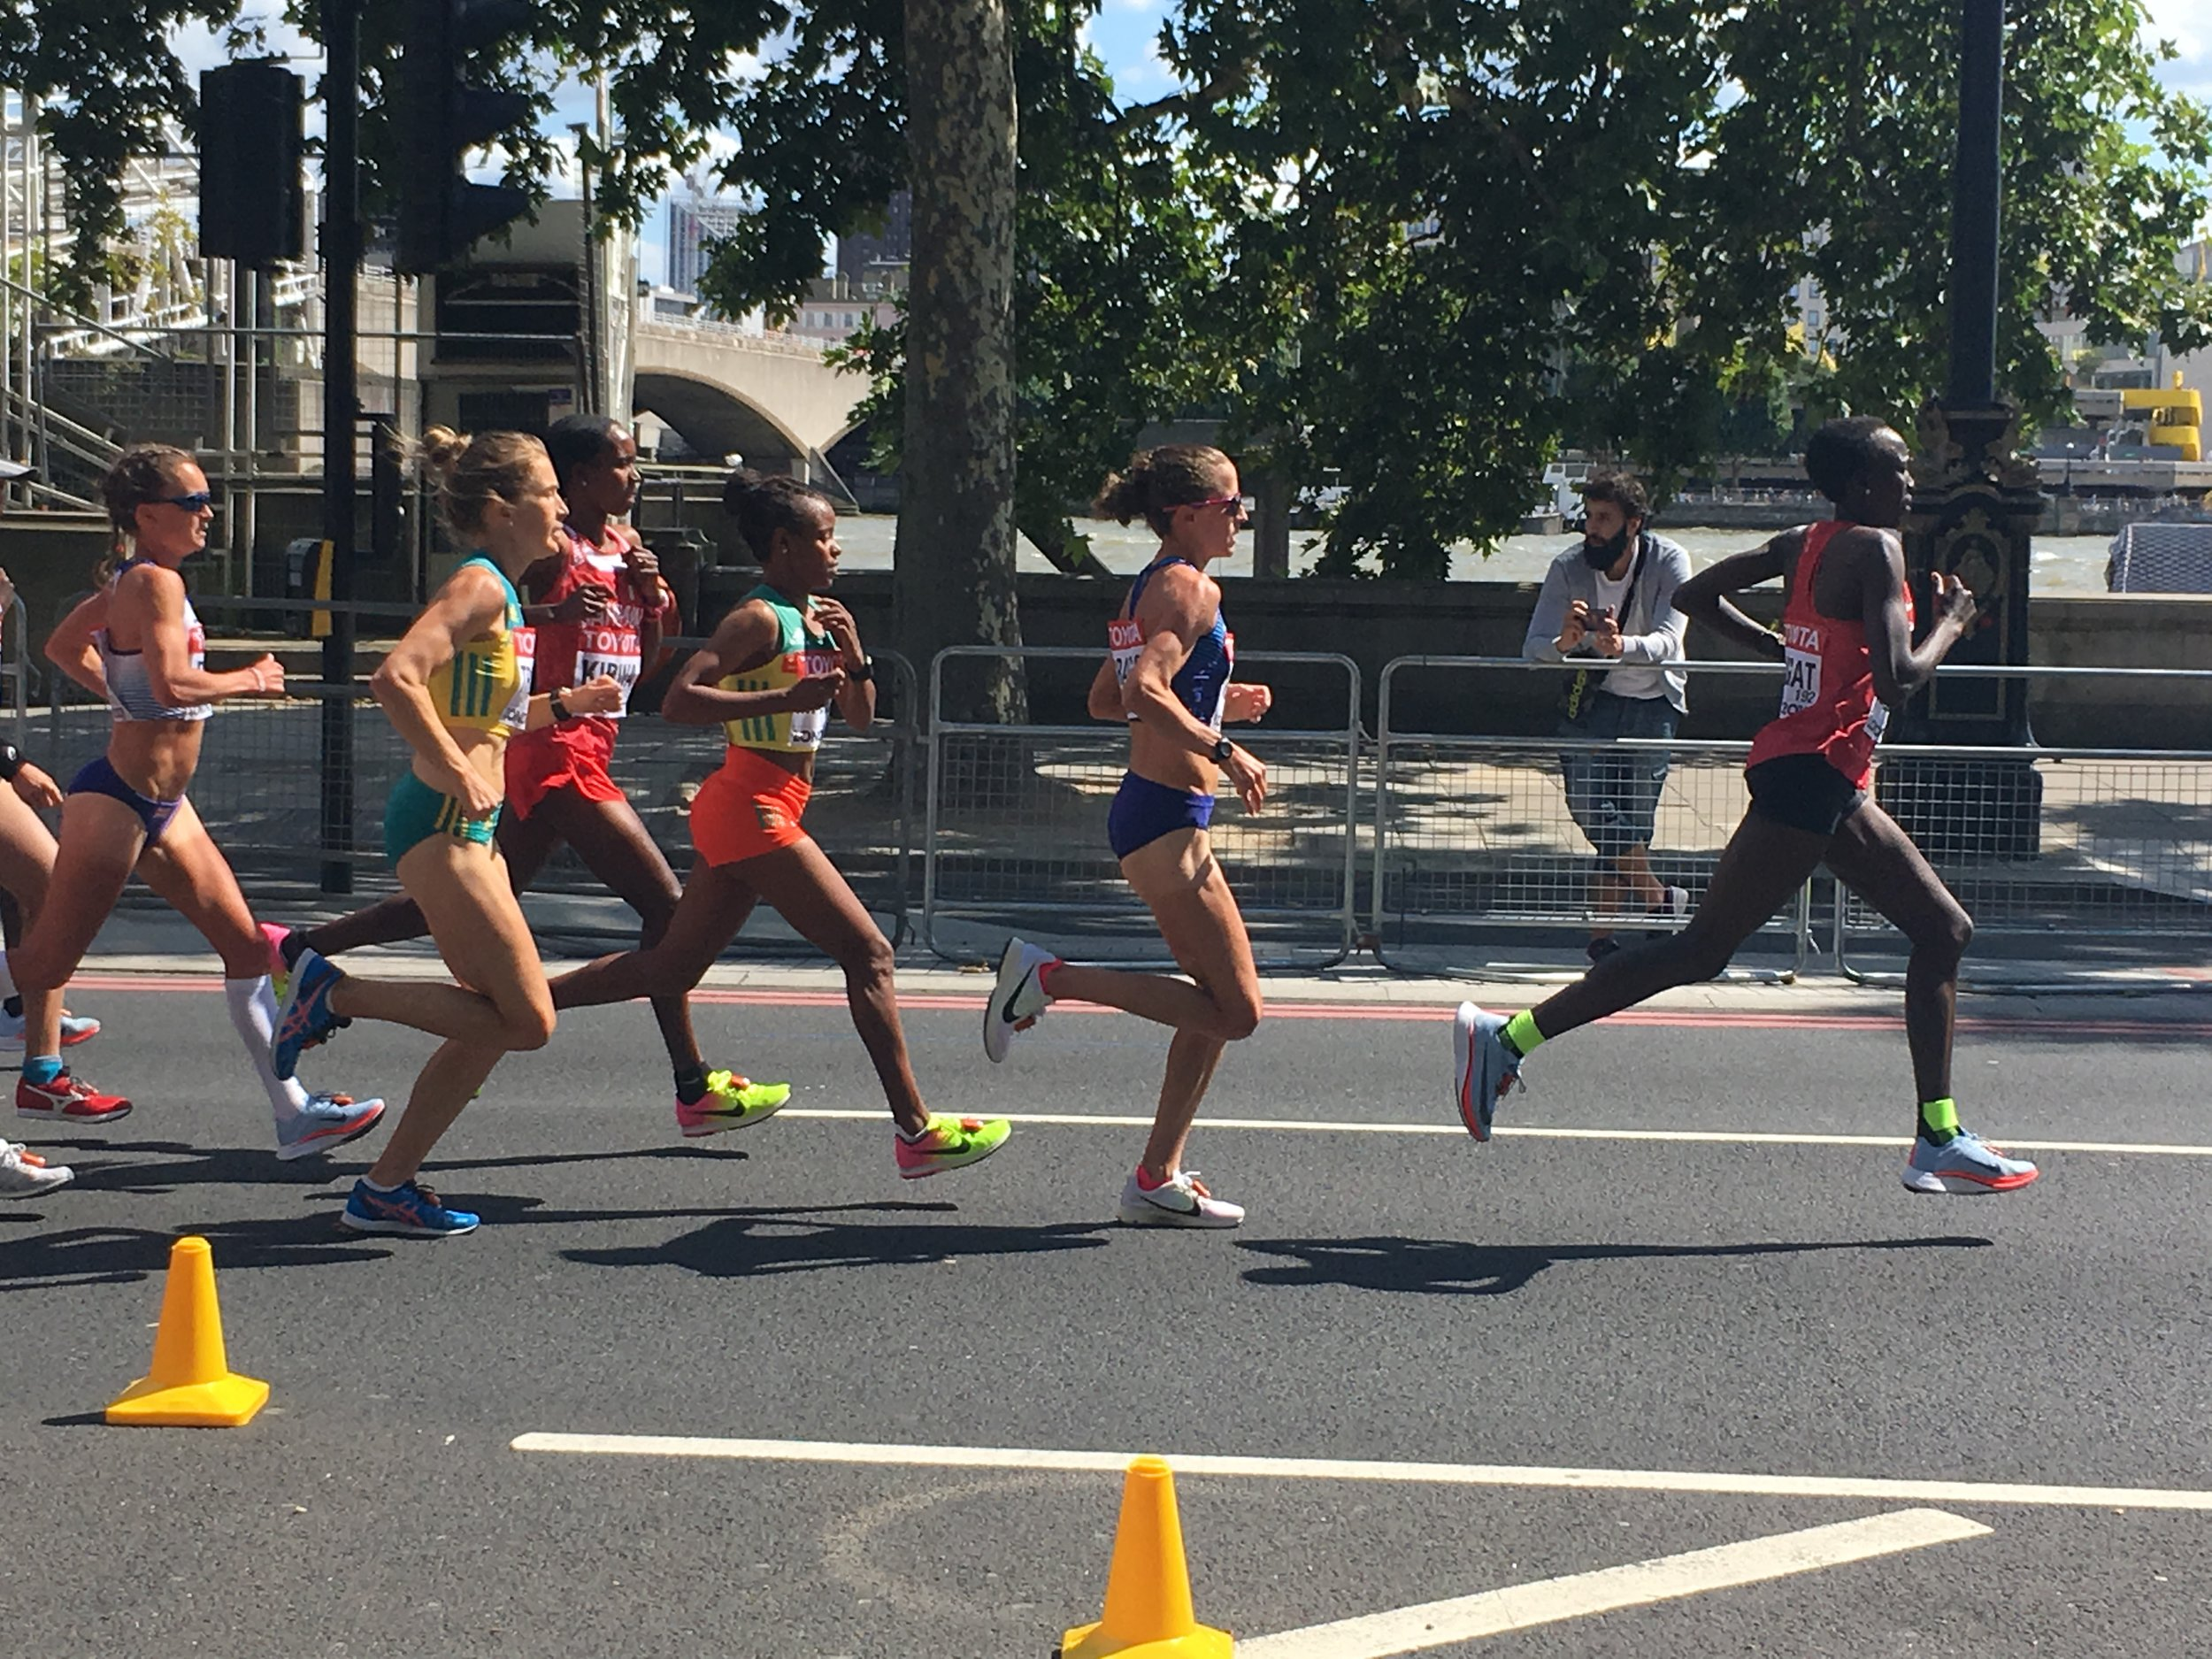 God, I loved watching the women's race and being this close.  Amy Hastings!